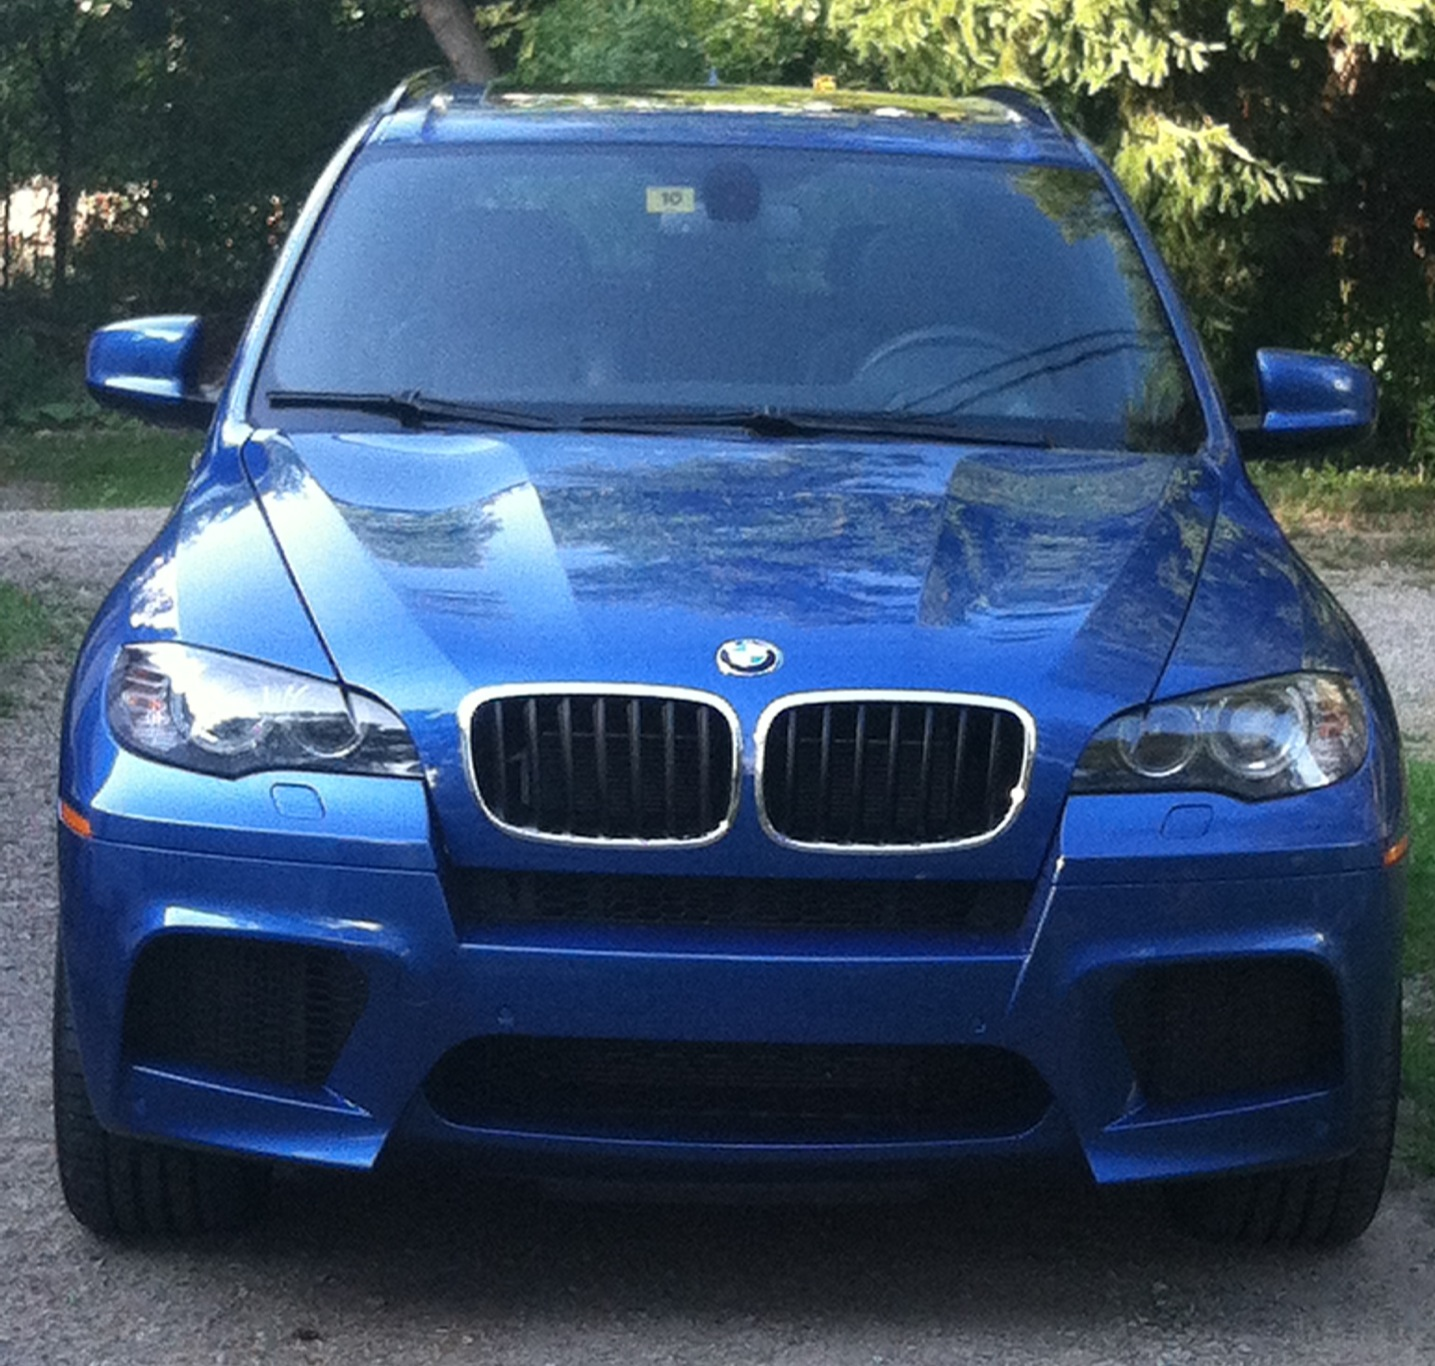 Stock 2010 BMW X5 M 1/4 mile Drag Racing timeslip specs 0-60 ...